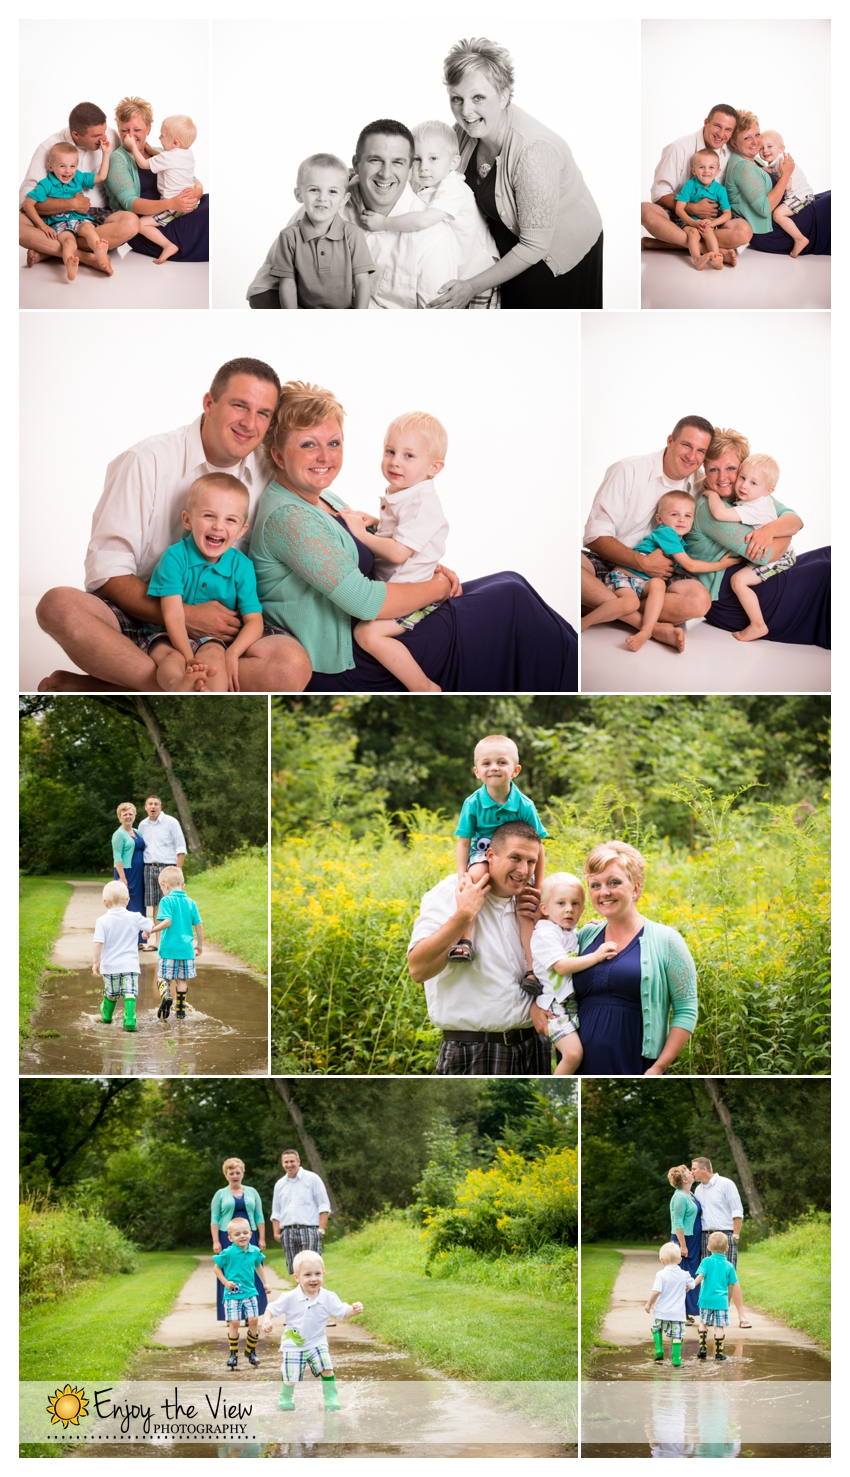 baby portraits, child photography, clio family photographer, Clio Family Photos, Clio Photographer, Family Photos, family portrait session, Family Portraits, family session, MI, portraits, studio in Clio, toddler photos